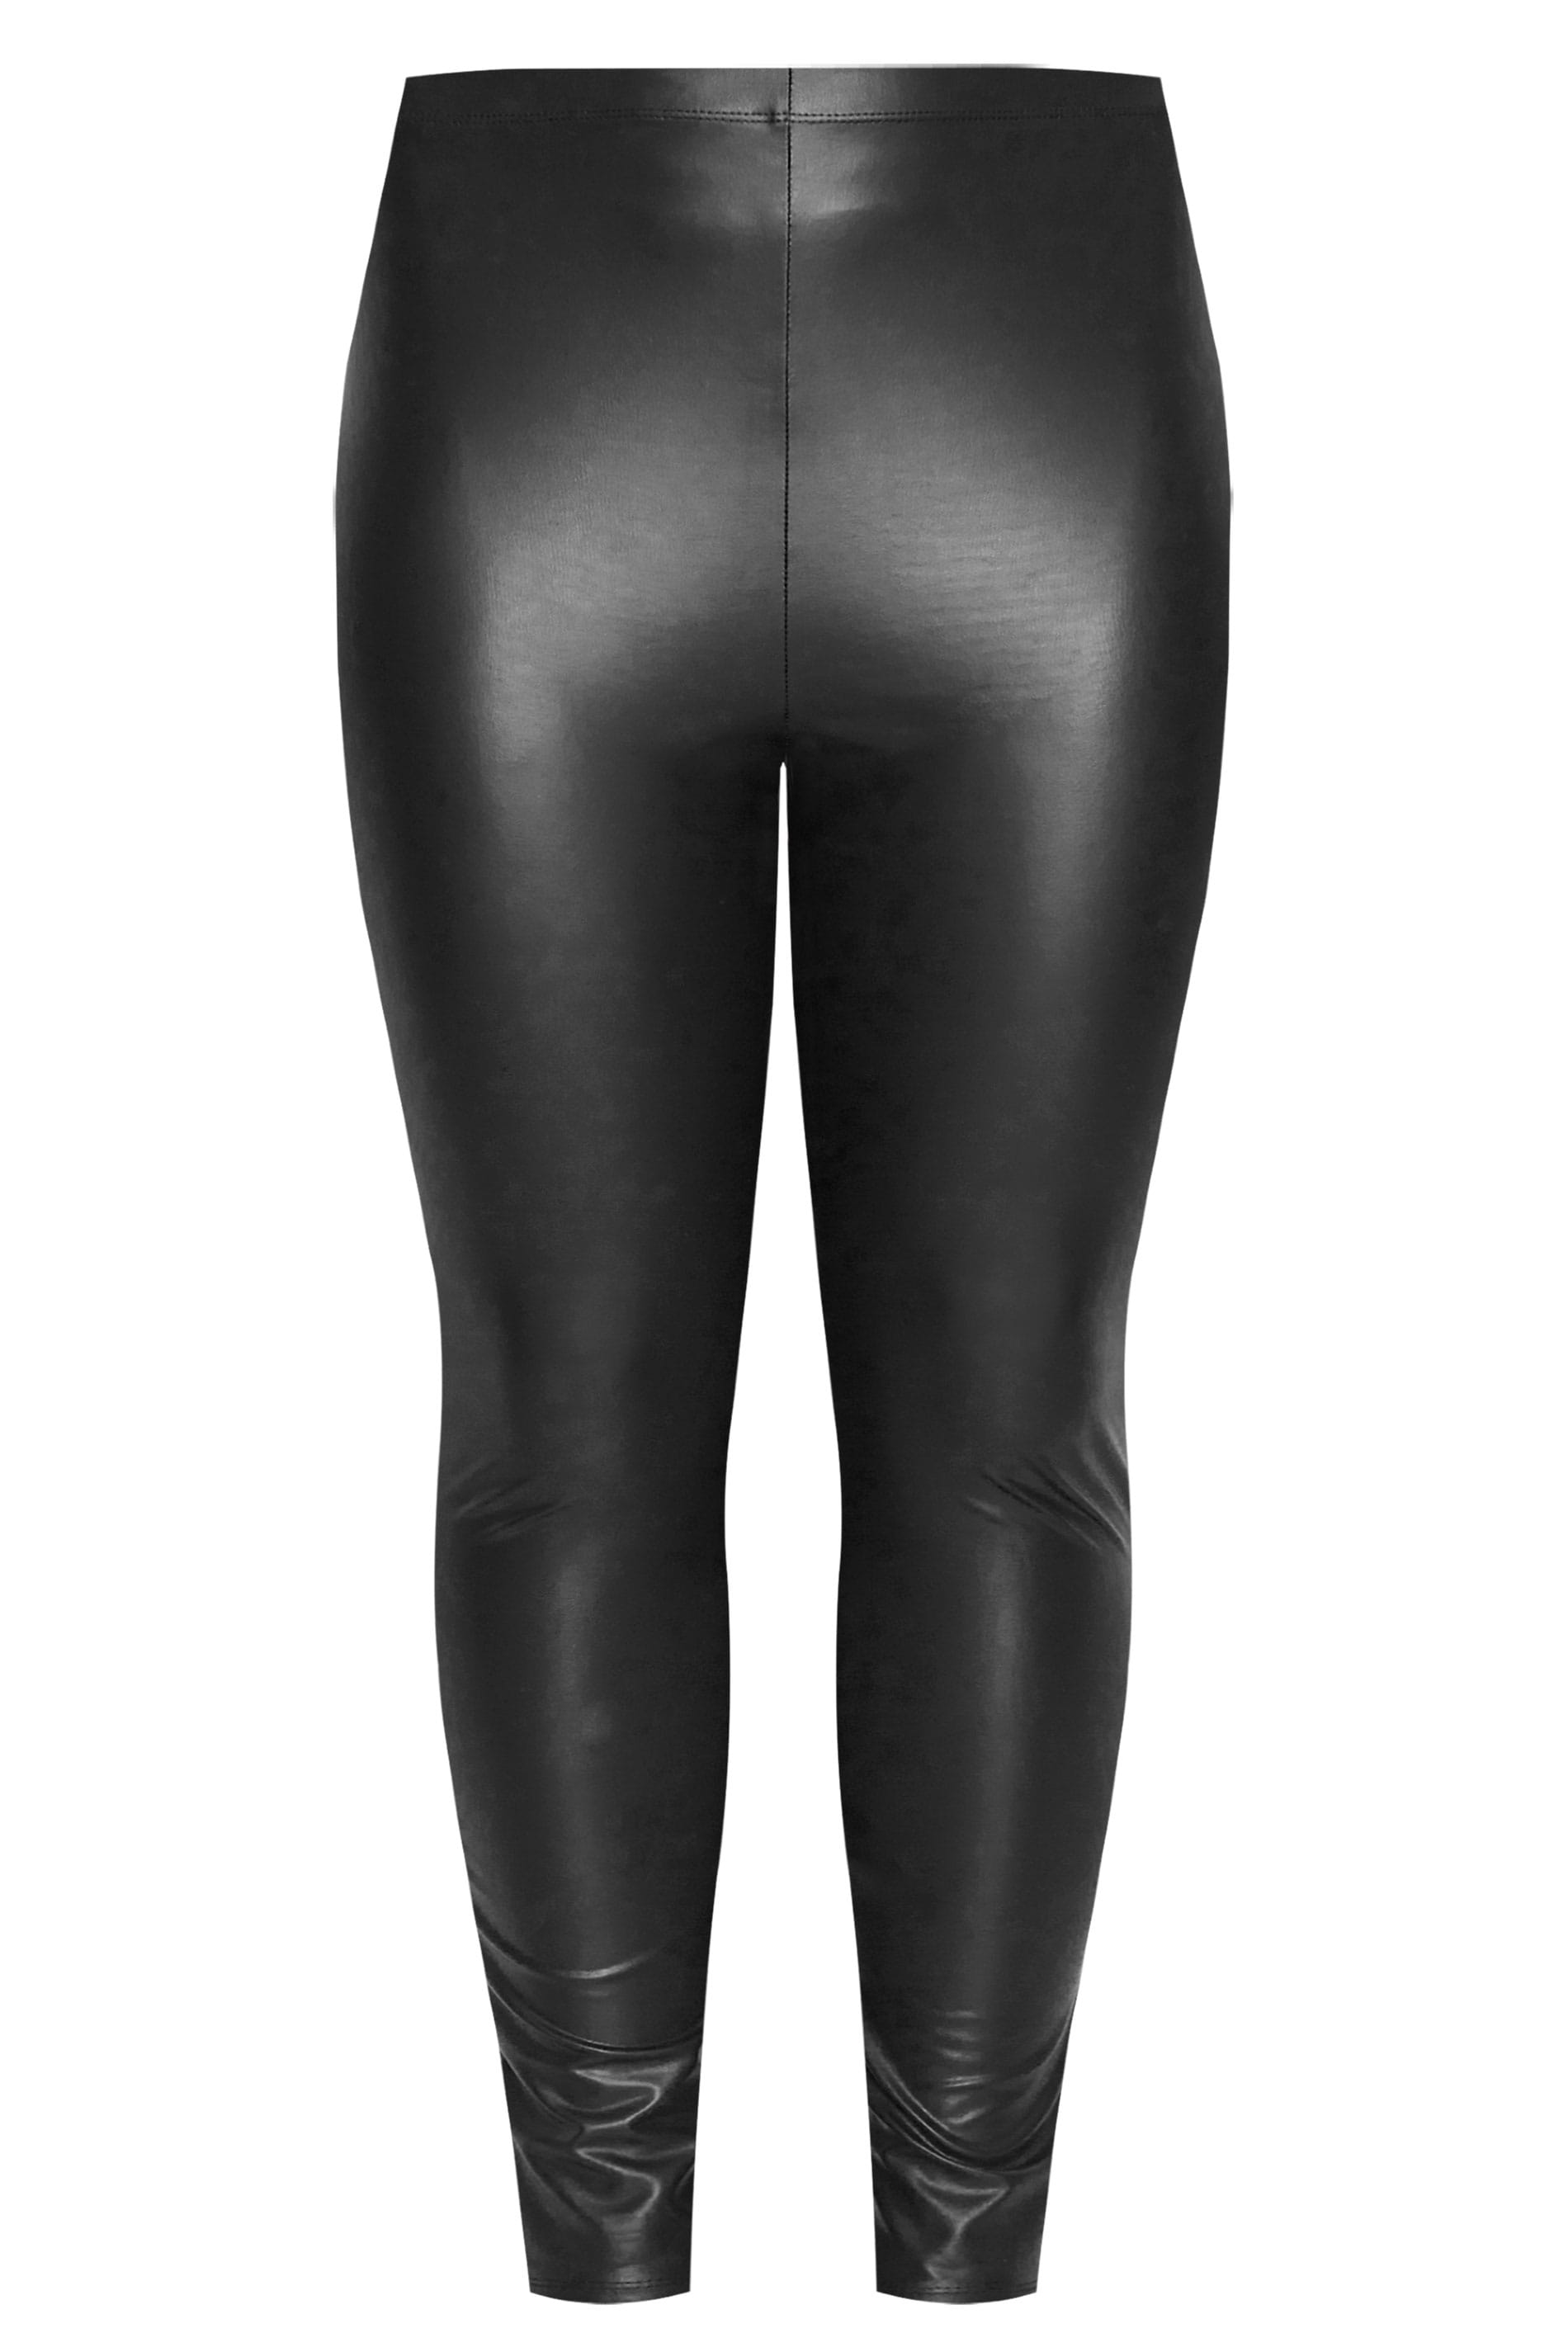 8687ec621ca1 Plus Size Black Faux Leather Leggings | Sizes 16 to 36 | Yours Clothing